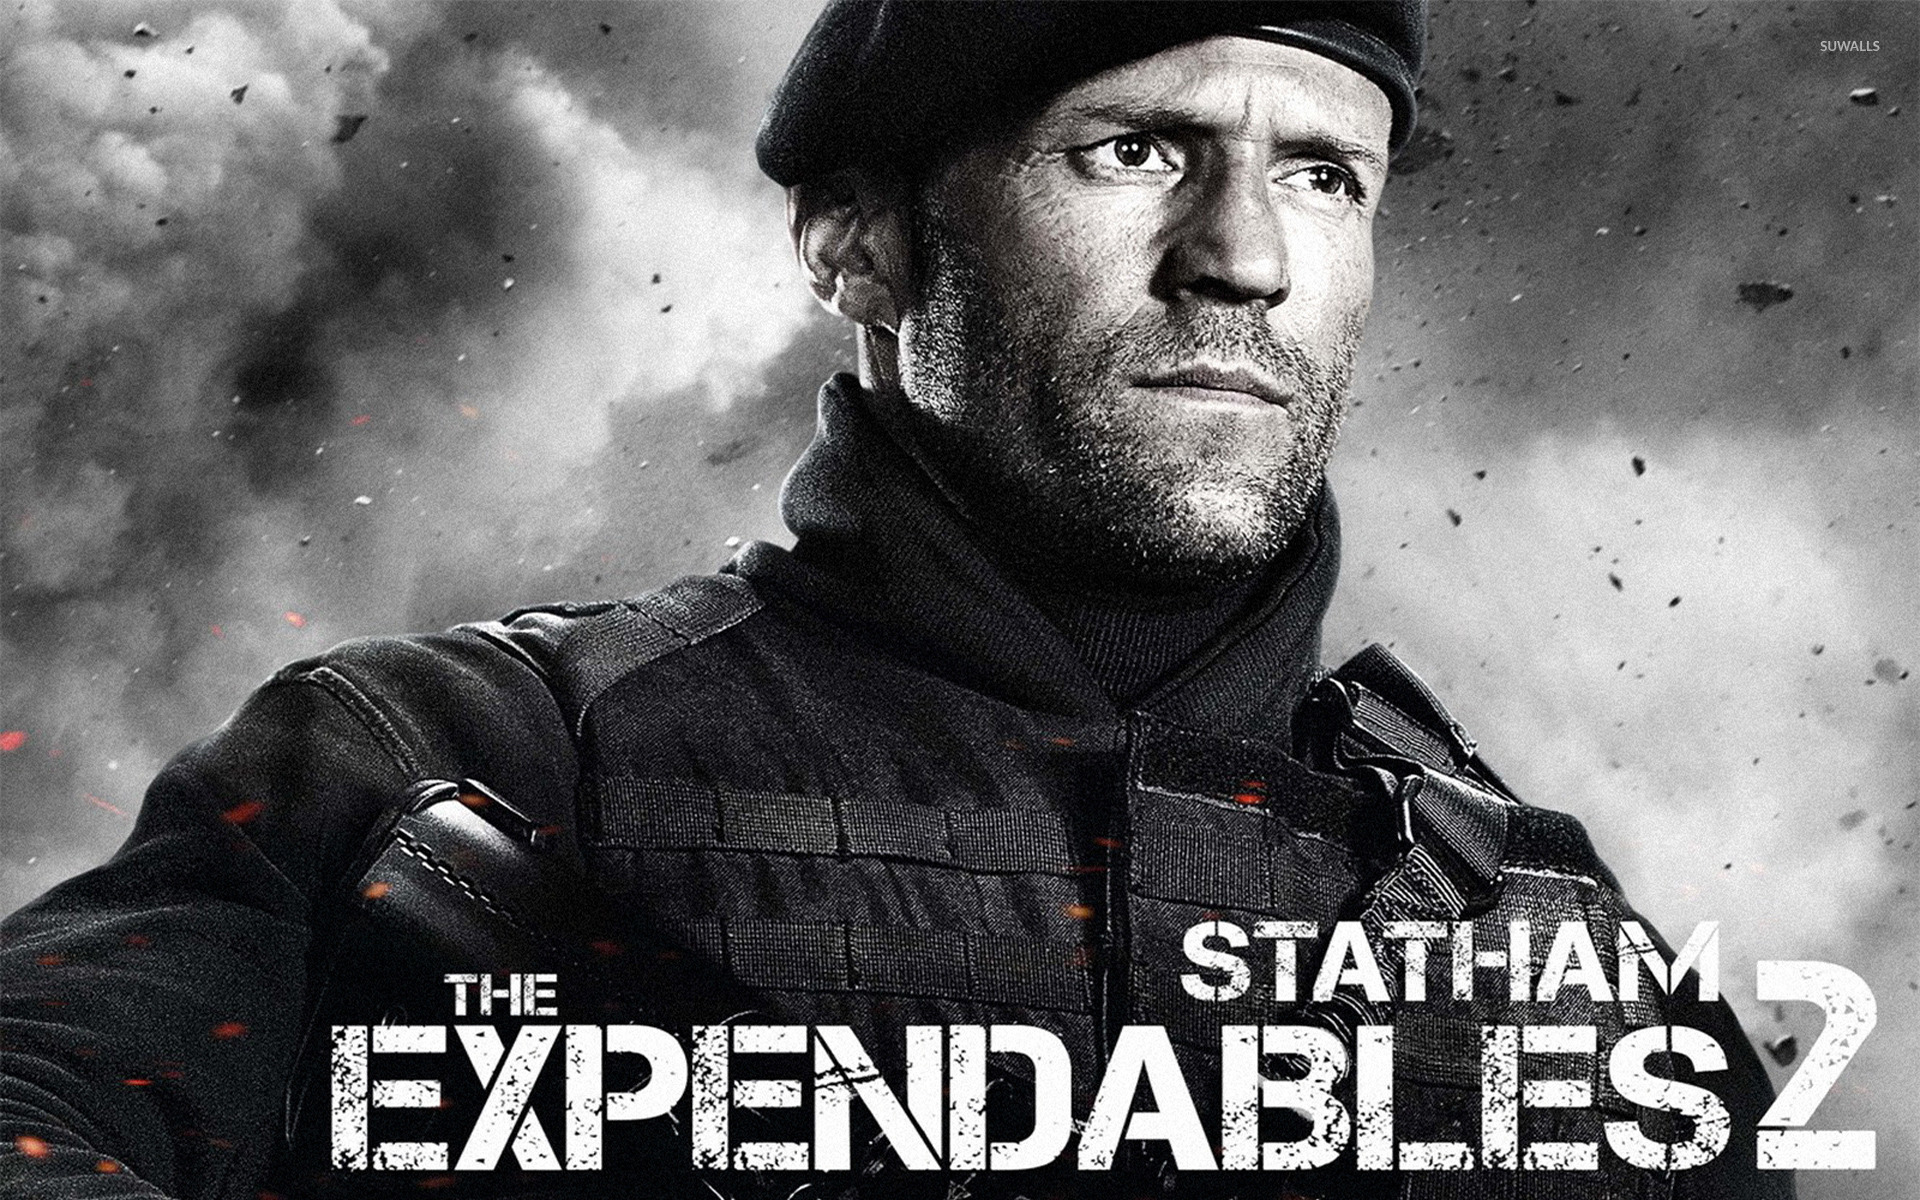 Lee Christmas - The Expendables 2 wallpaper - Movie wallpapers ...